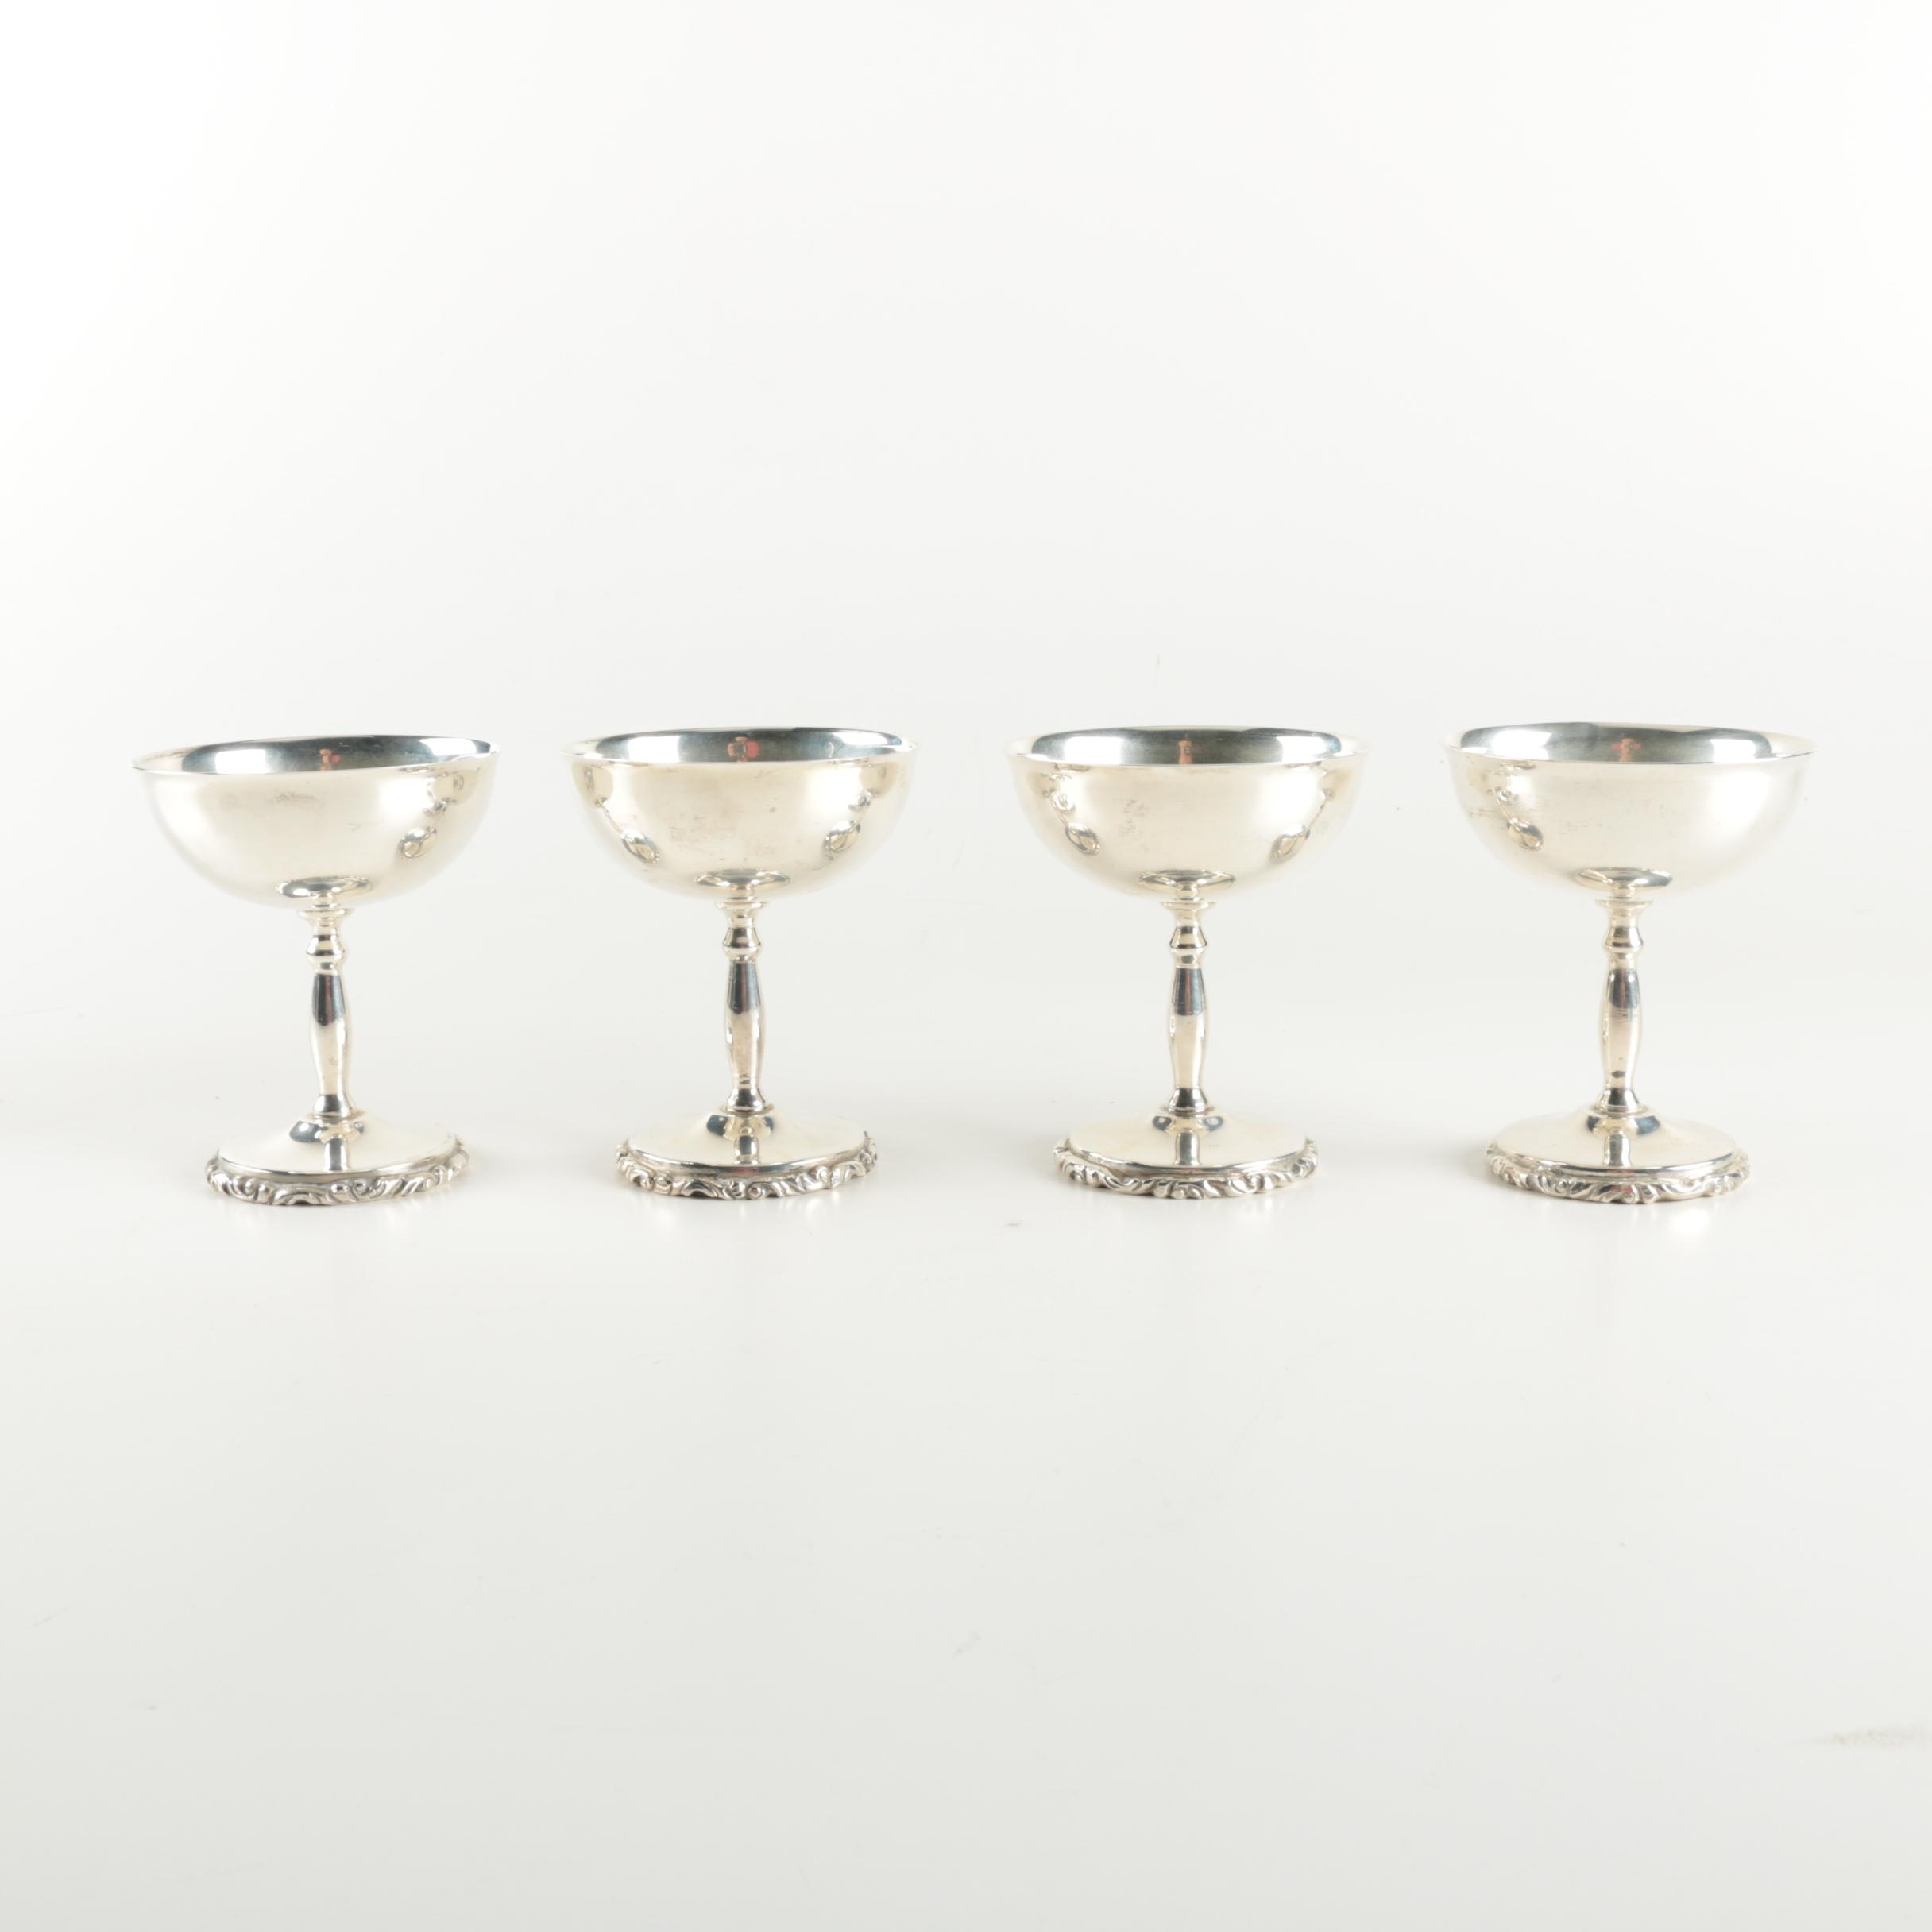 Juvento Lopez Reyes Mexican Sterling Silver Champagne Coupes